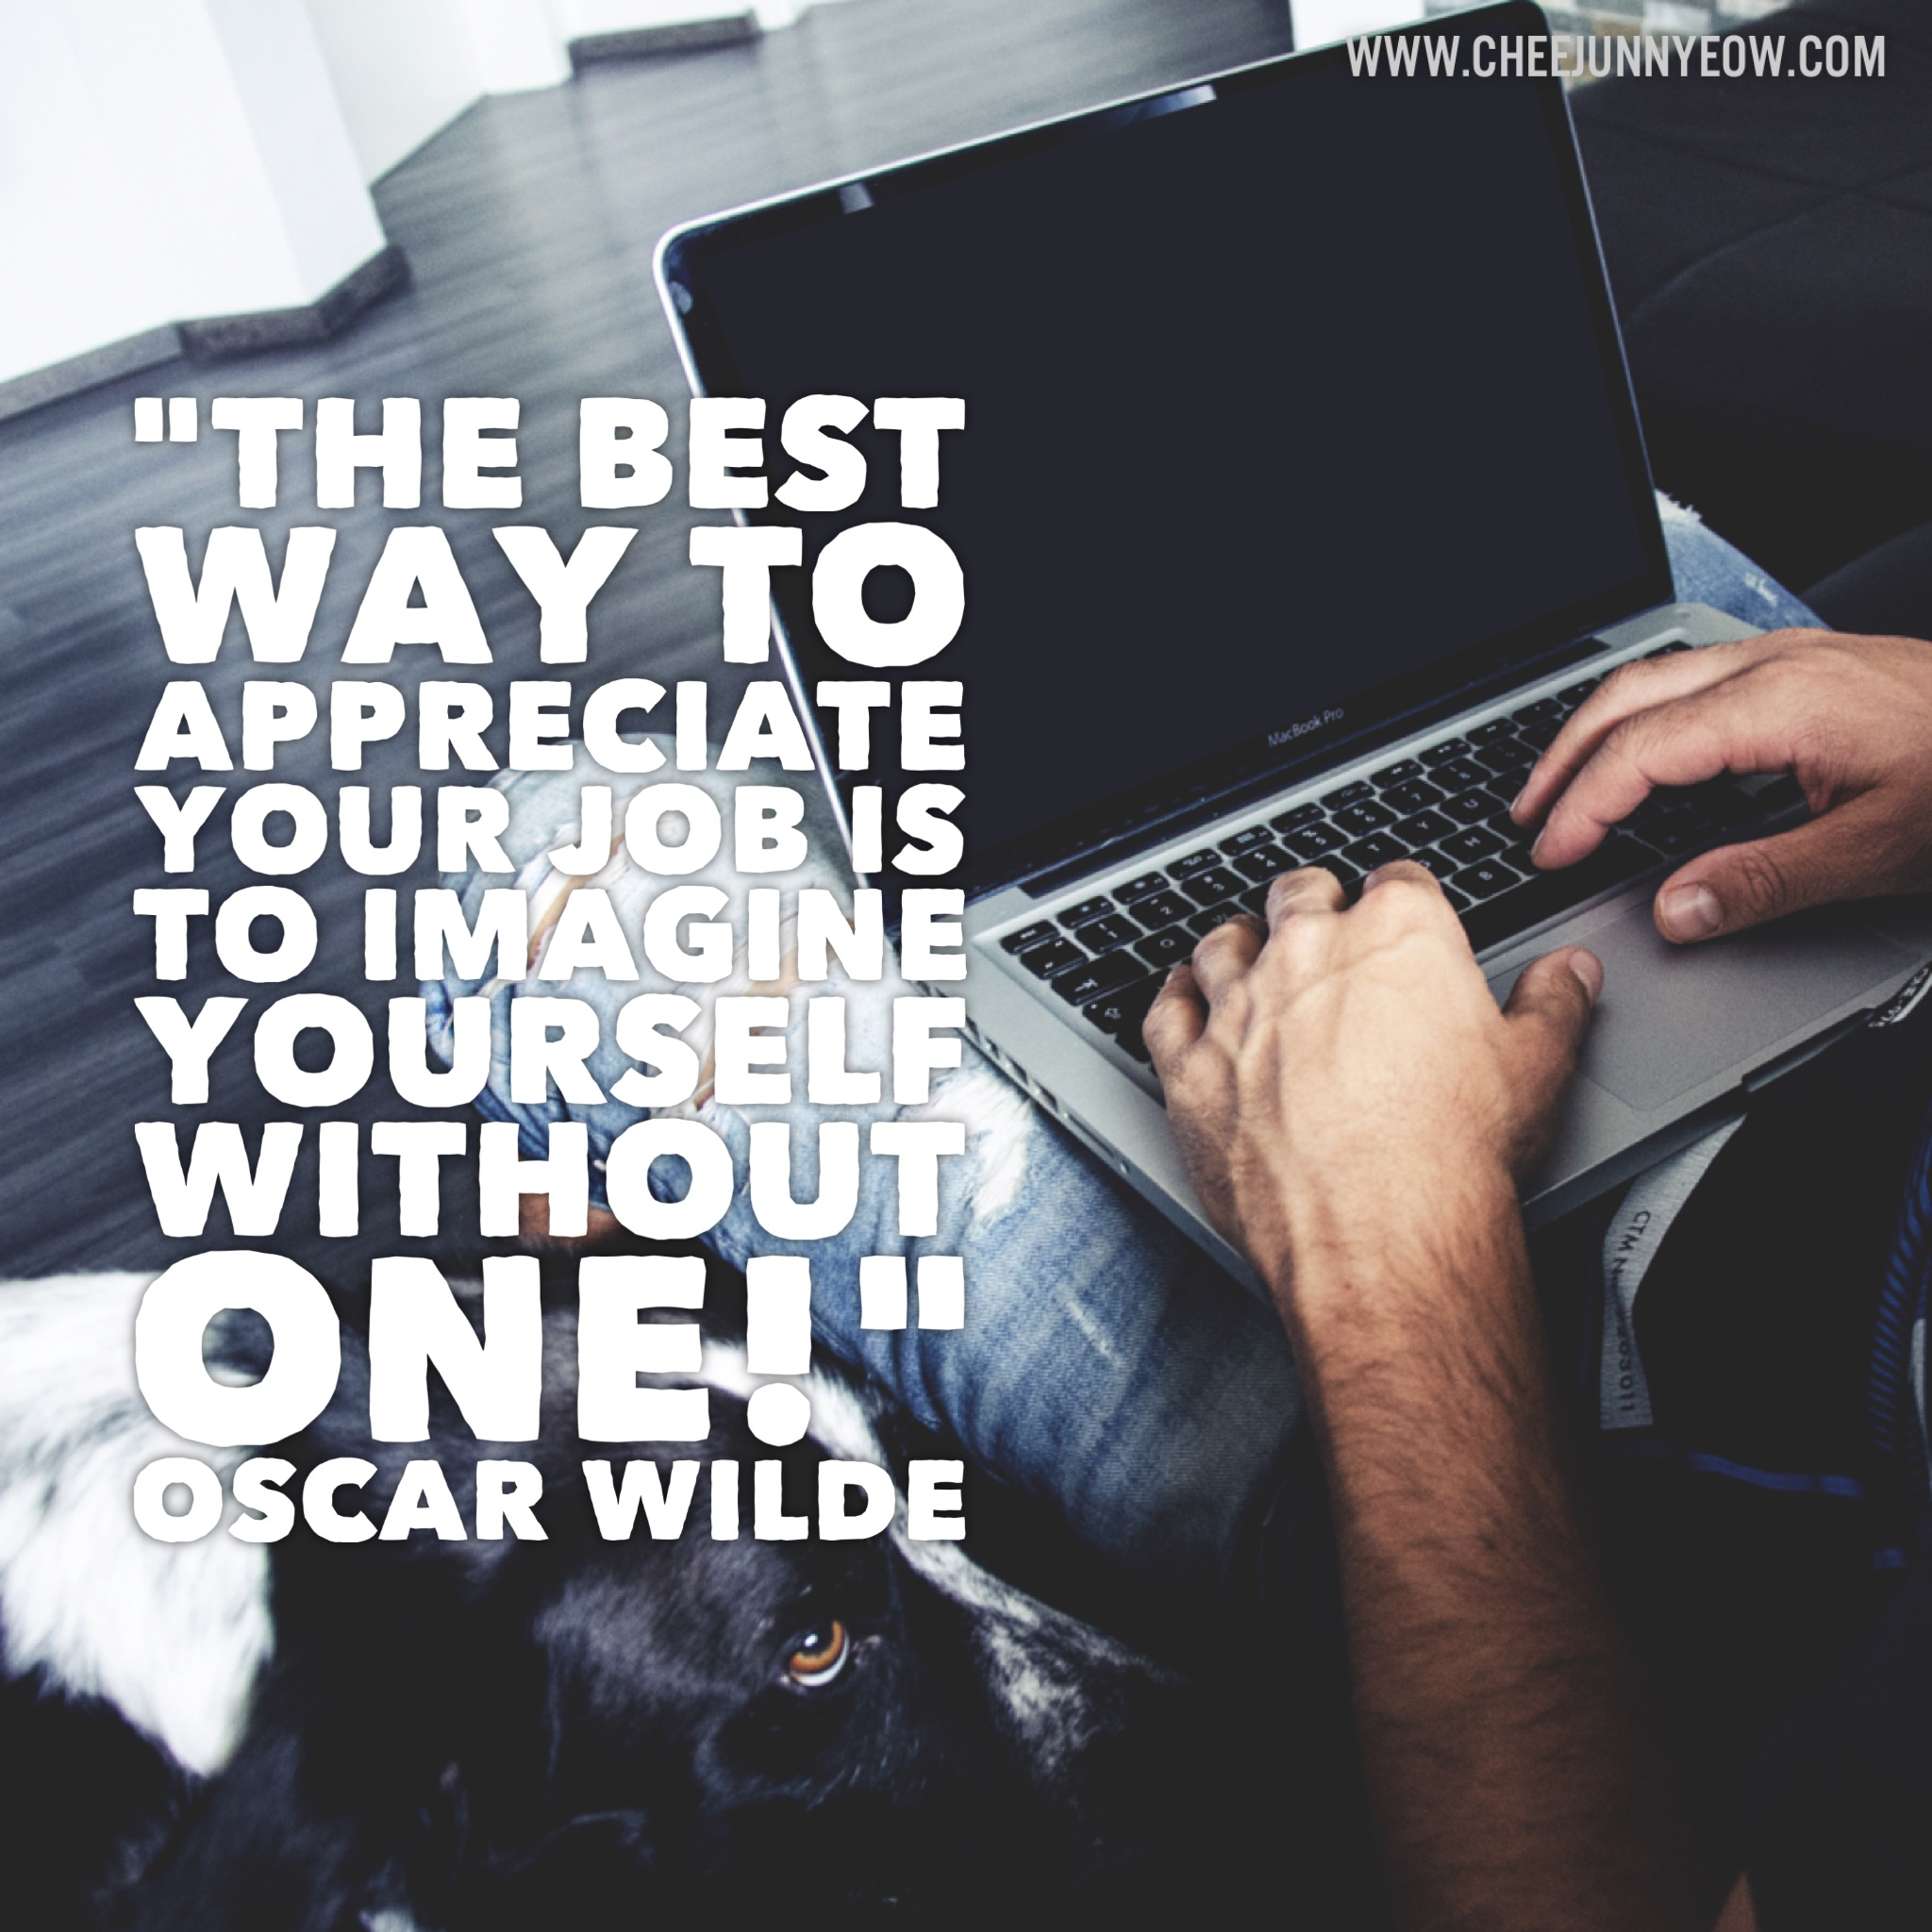 the best way to appreciate your job is to imagine yourself without one!